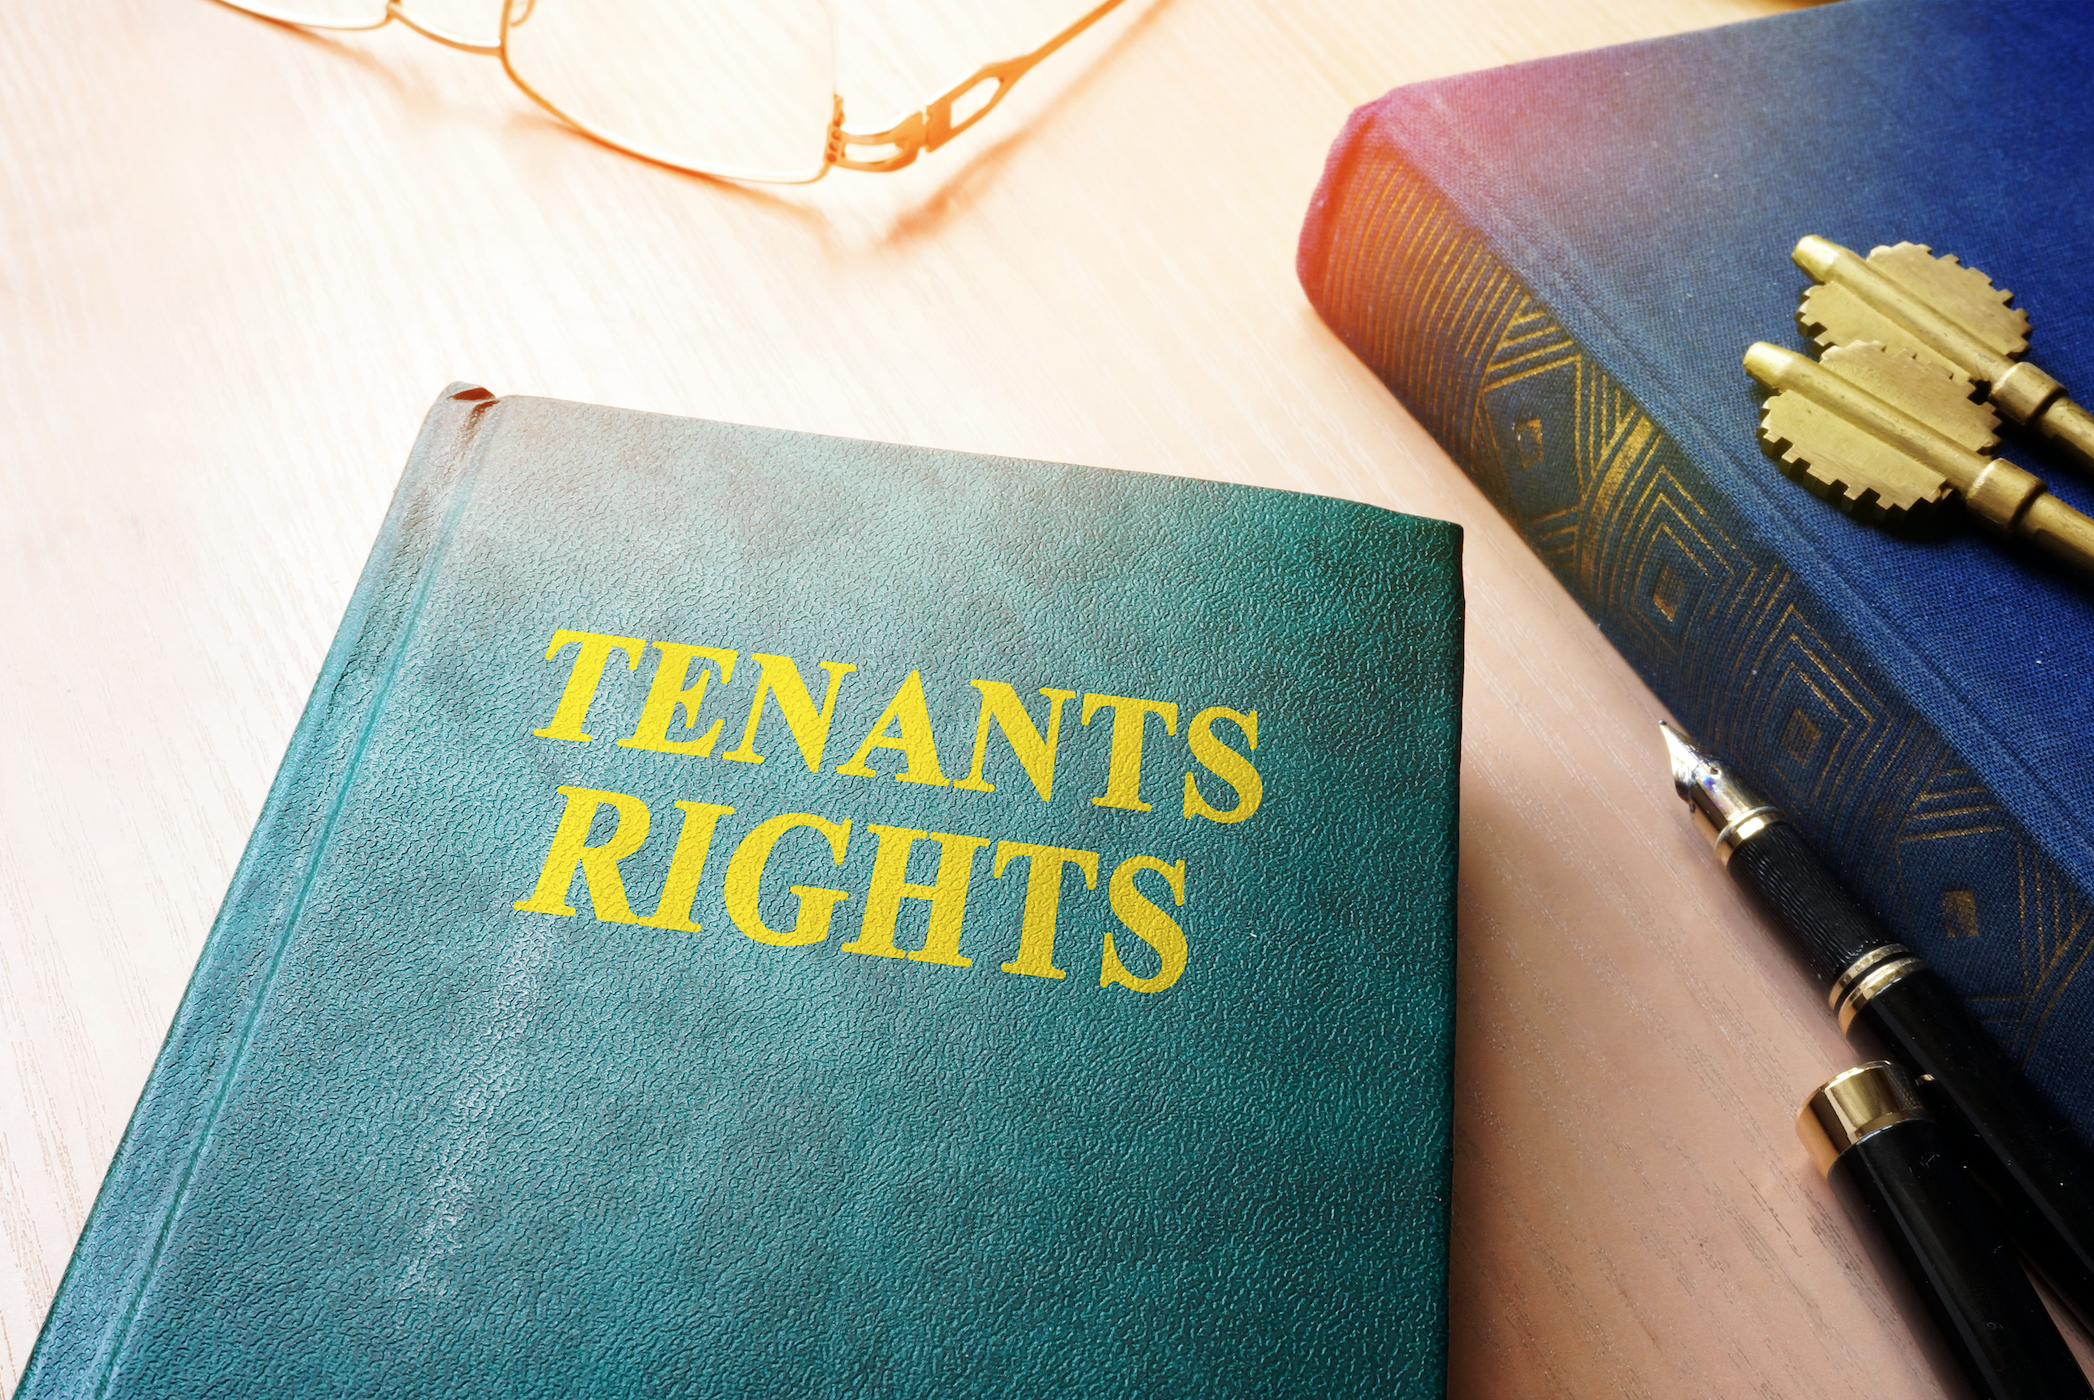 COVID-19: What are your rights as a tenant?